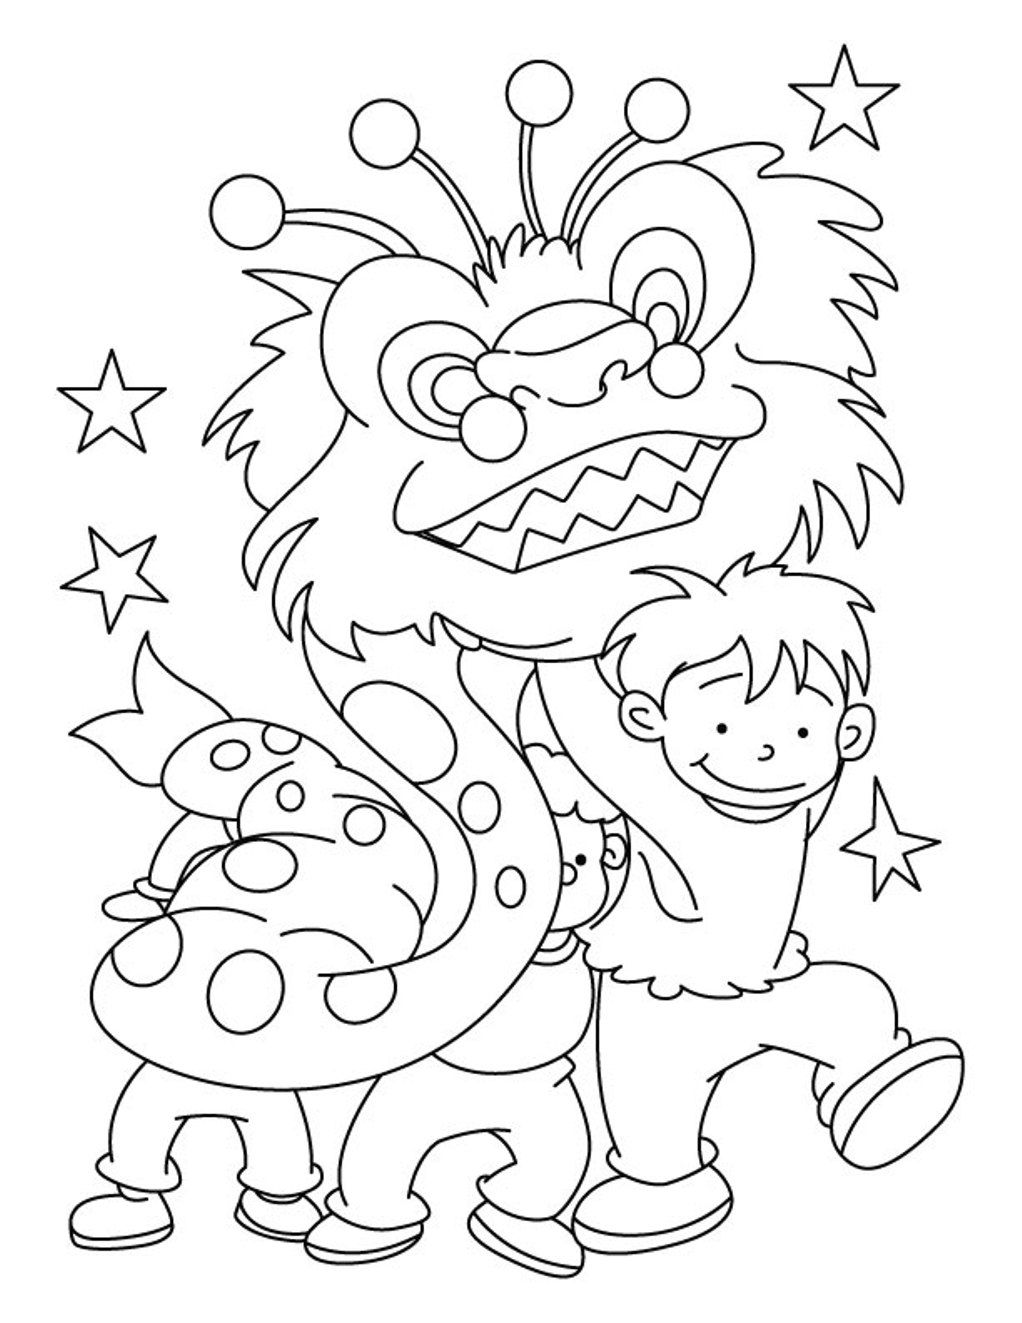 1022x1323 Chinese New Year Coloring Pages Bpsc Conf Org For Your Free